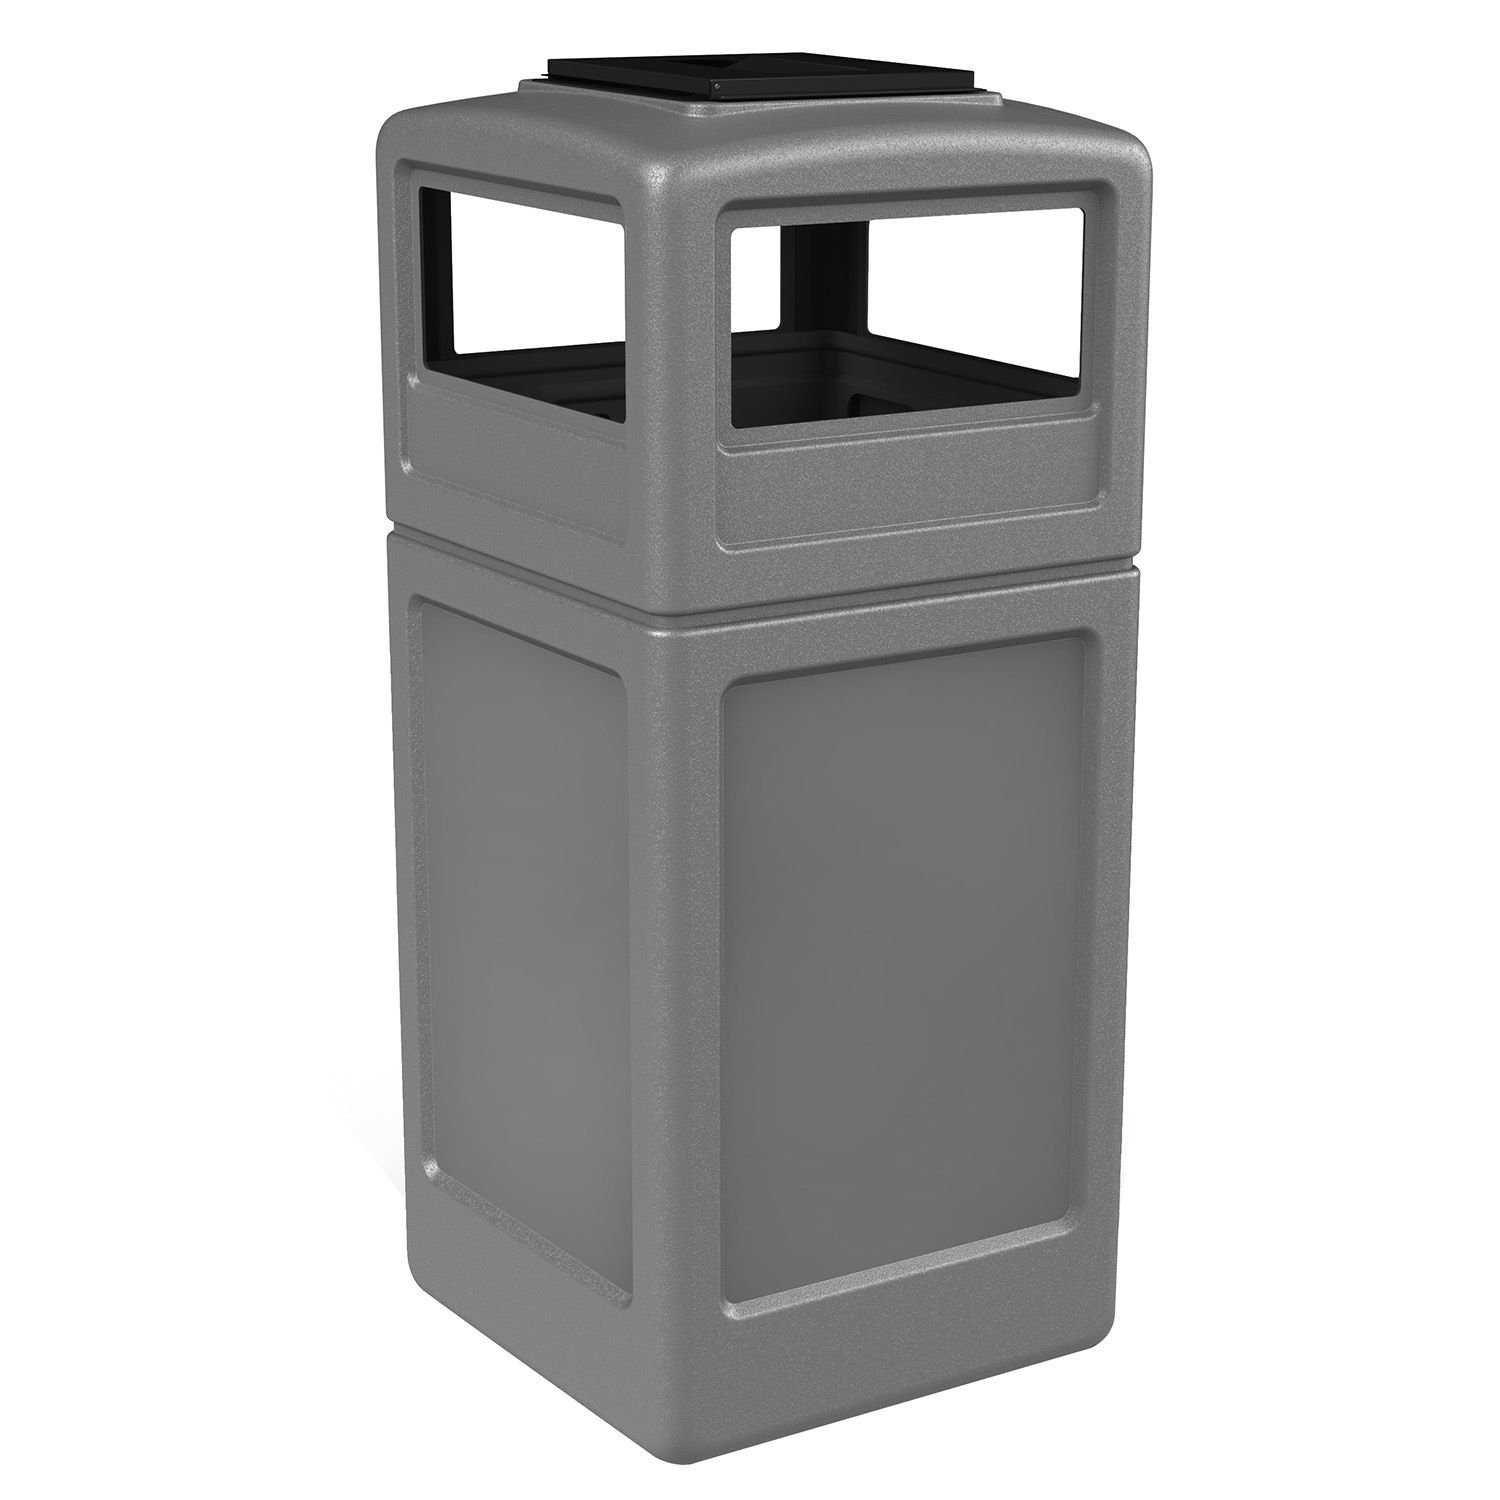 Commercial Industrial Square Waste Container with Ashtray Lid, Polyethylene, 42-gal, Gray Garbage Can, Trash, Litter